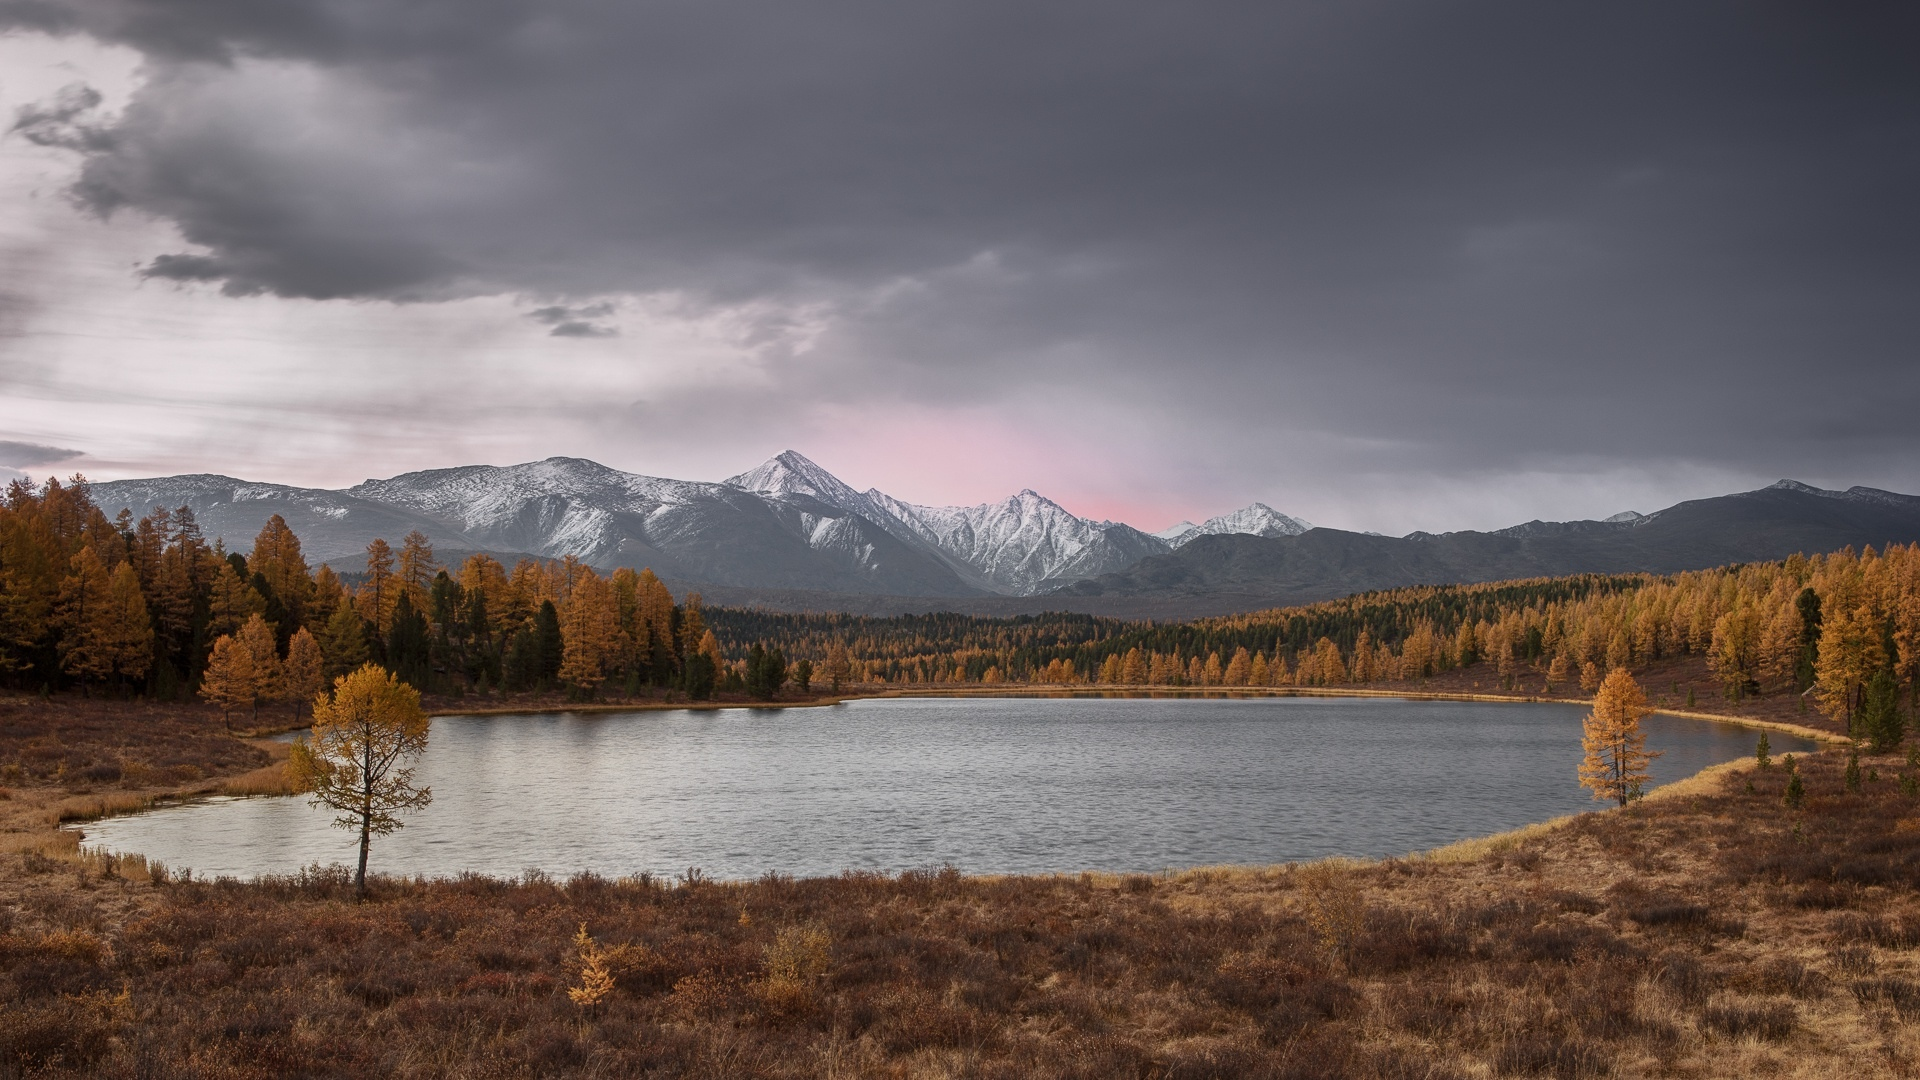 Altay, lake, trees, mountains, autumn 1920x1080 wallpaper